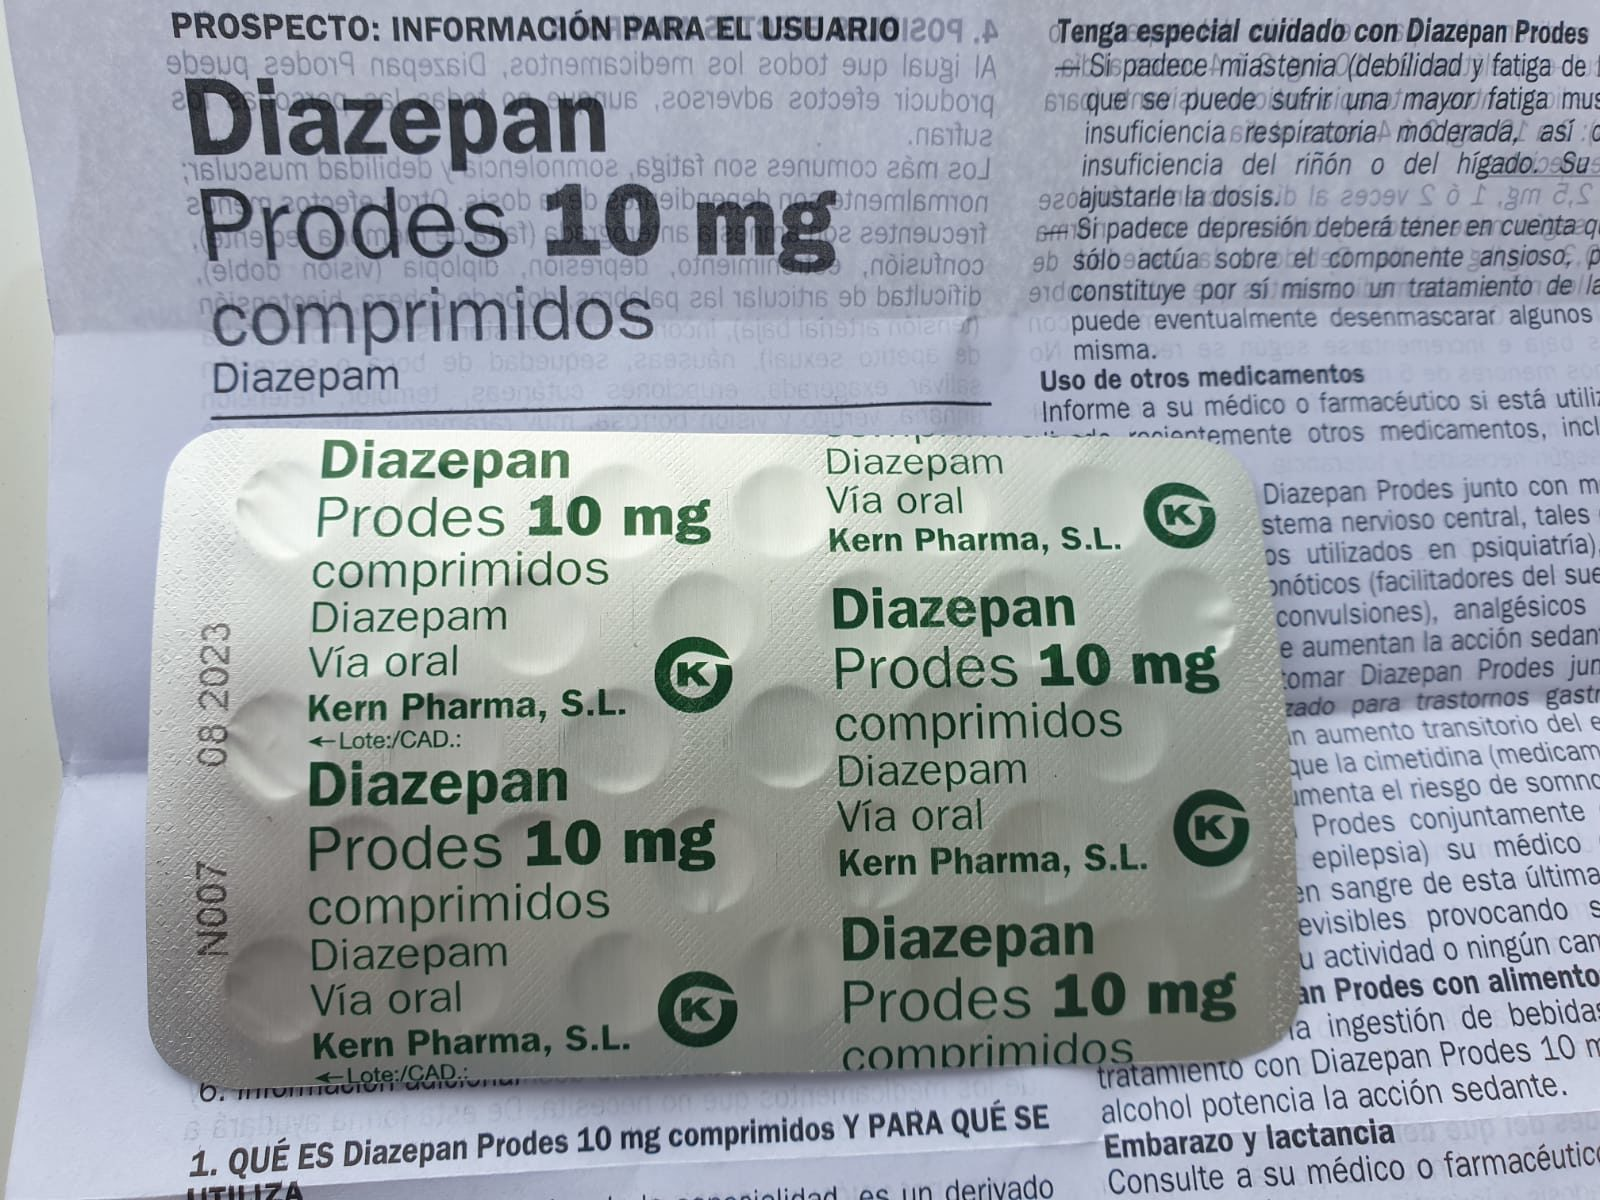 Diazepam-10-mg-e1557299165237.jpg.pagespeed.ic.BArVC5tNB6